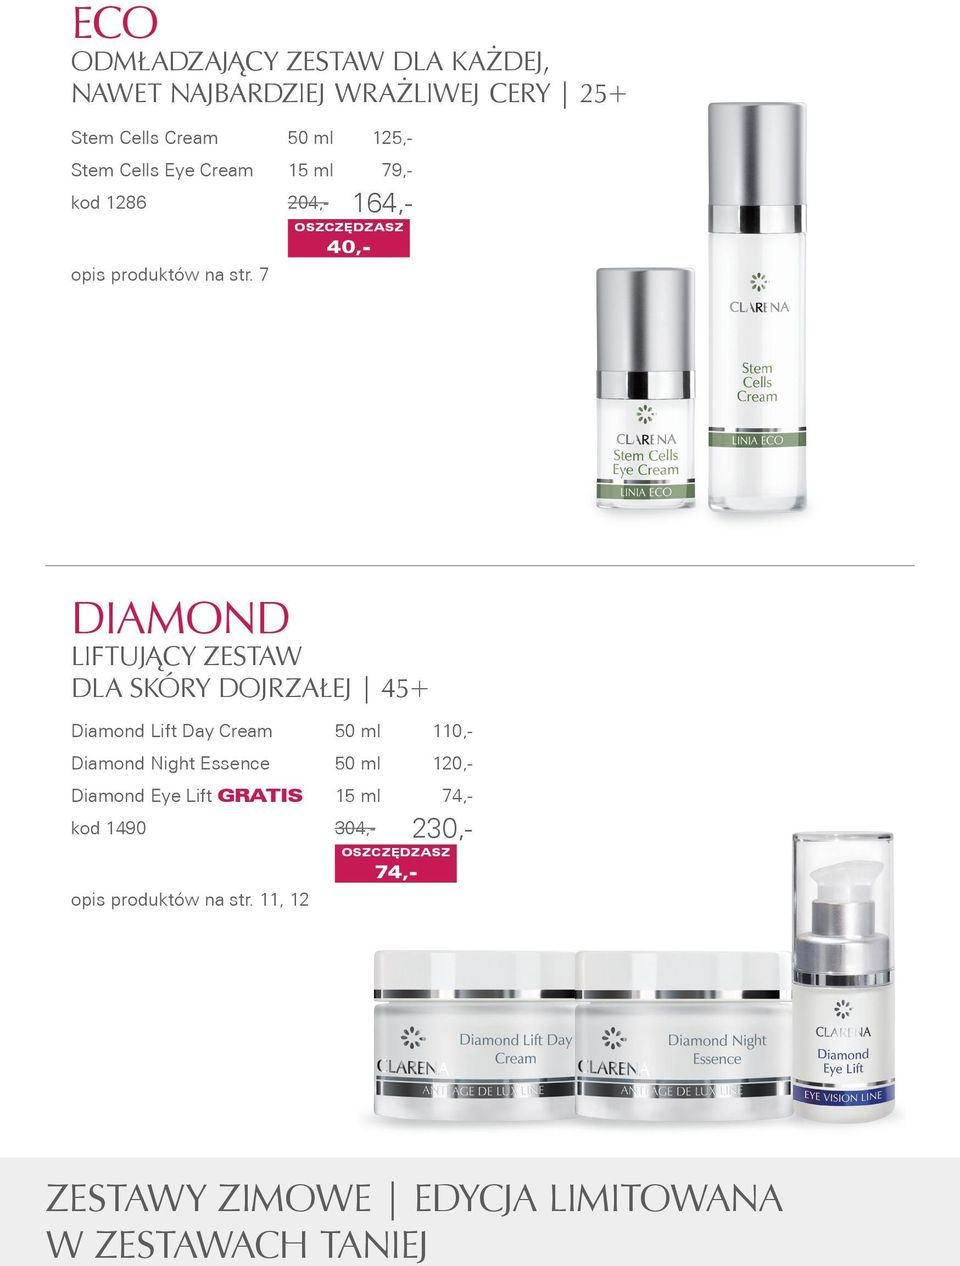 7 DIAMOND LIFTUJĄCY ZESTAW DLA SKÓRY DOJRZAŁEJ 45+ Diamond Lift Day Cream 50 ml 110,- Diamond Night Essence 50 ml